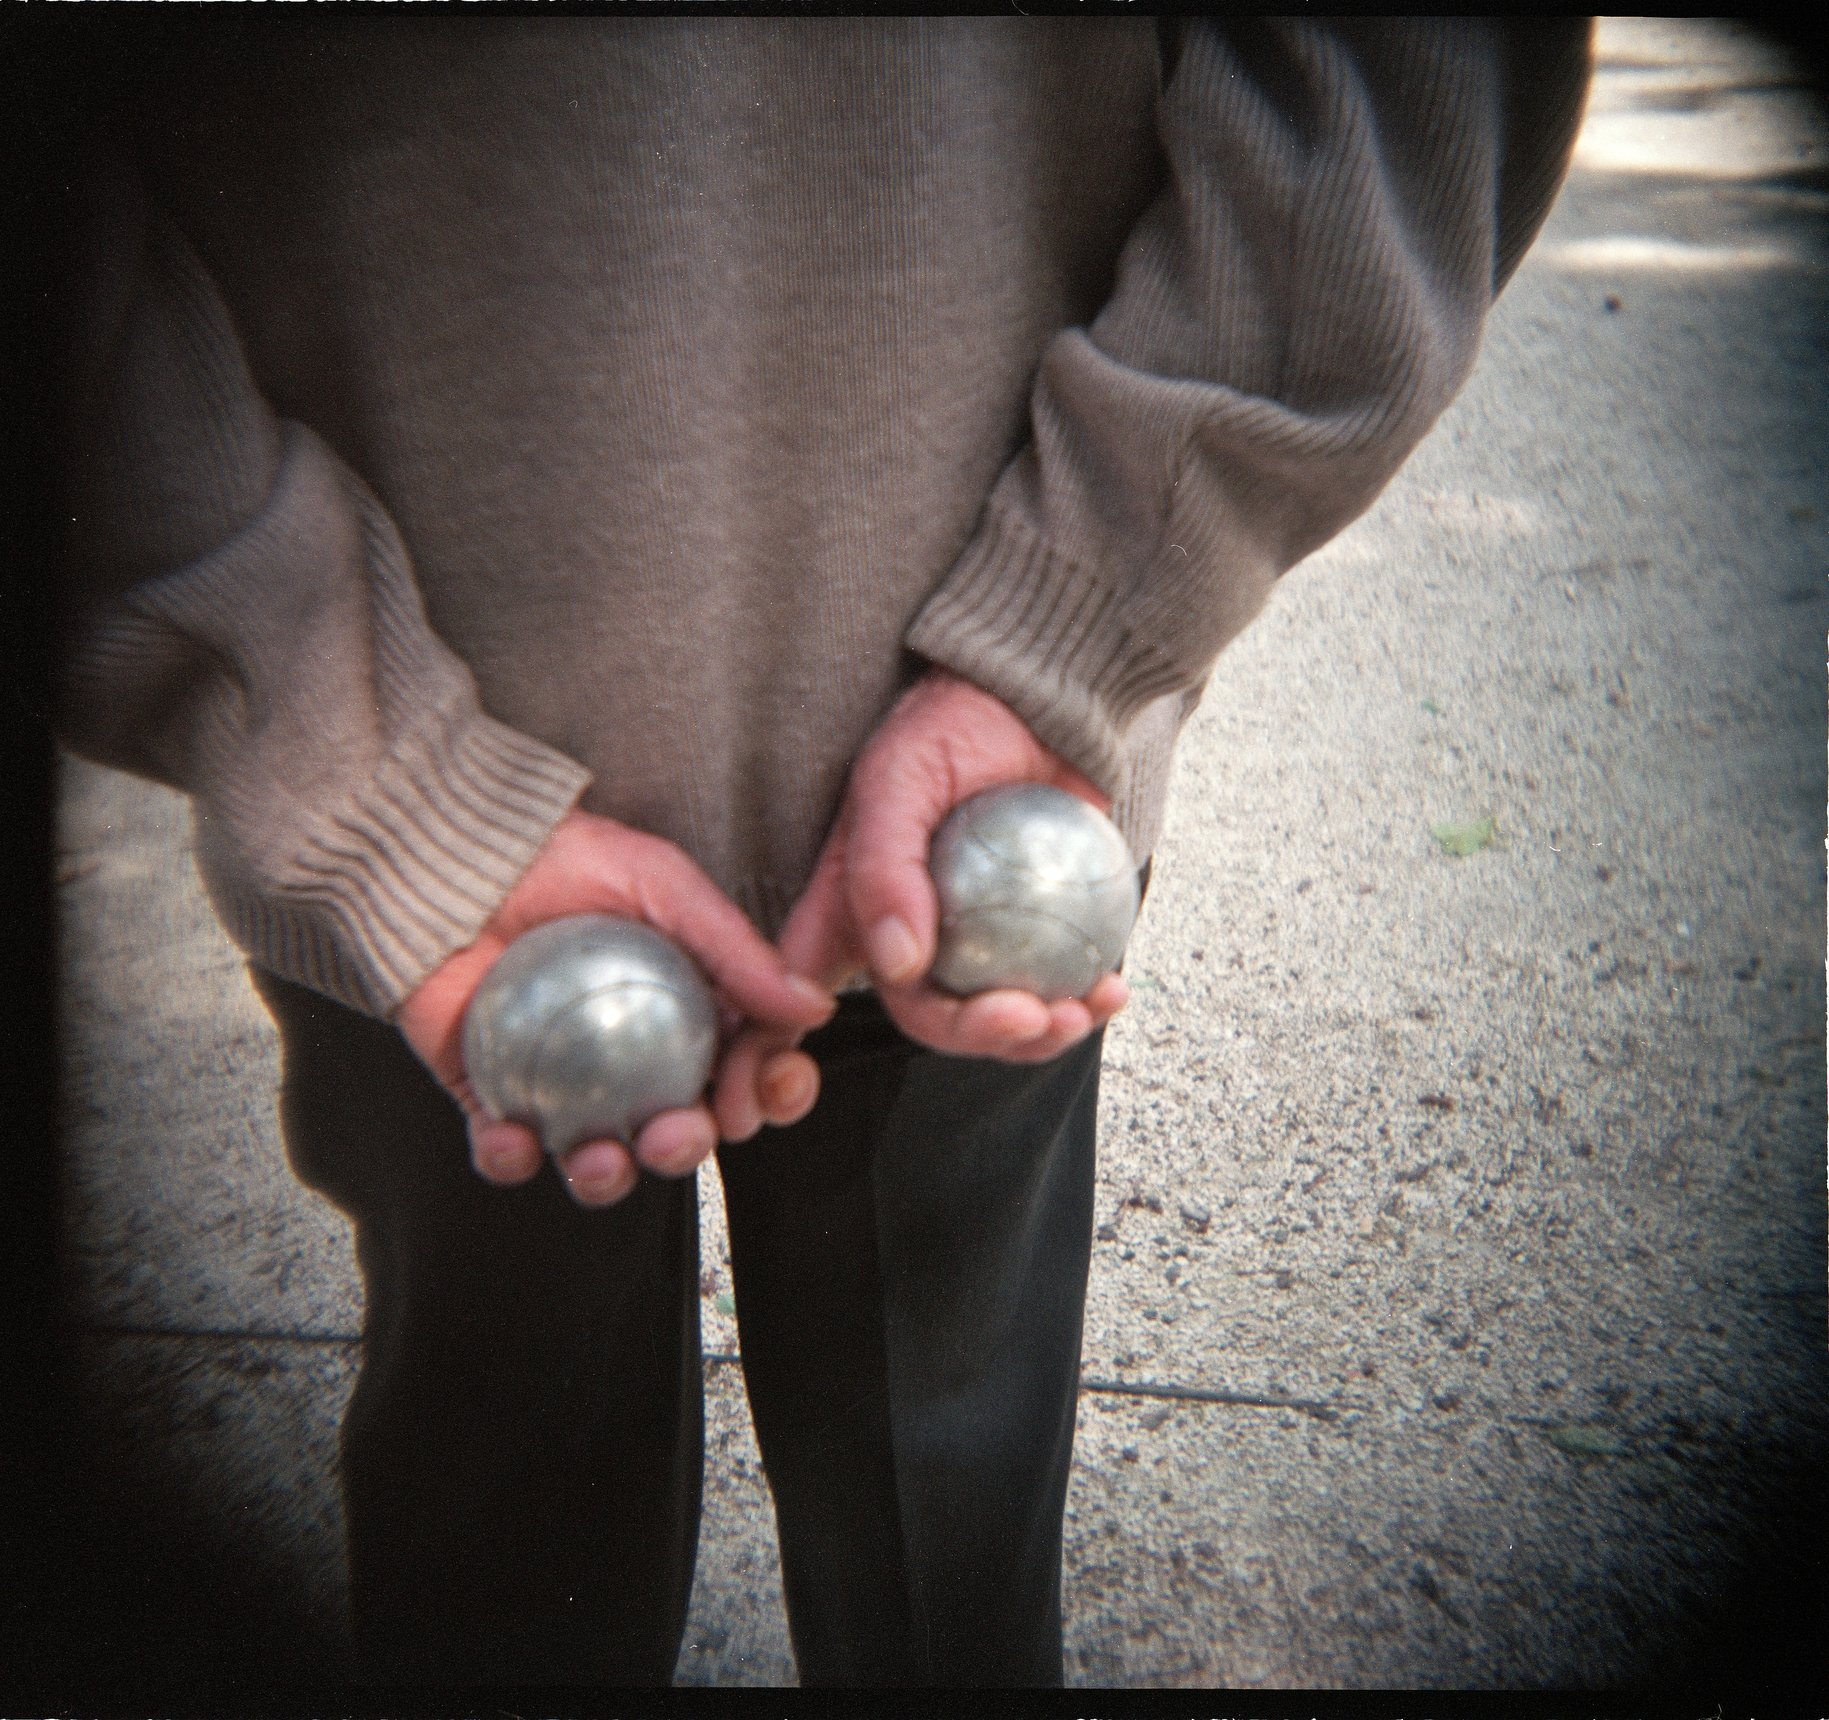 Holga France 85 001-07-BallsBehindBack - Version 2